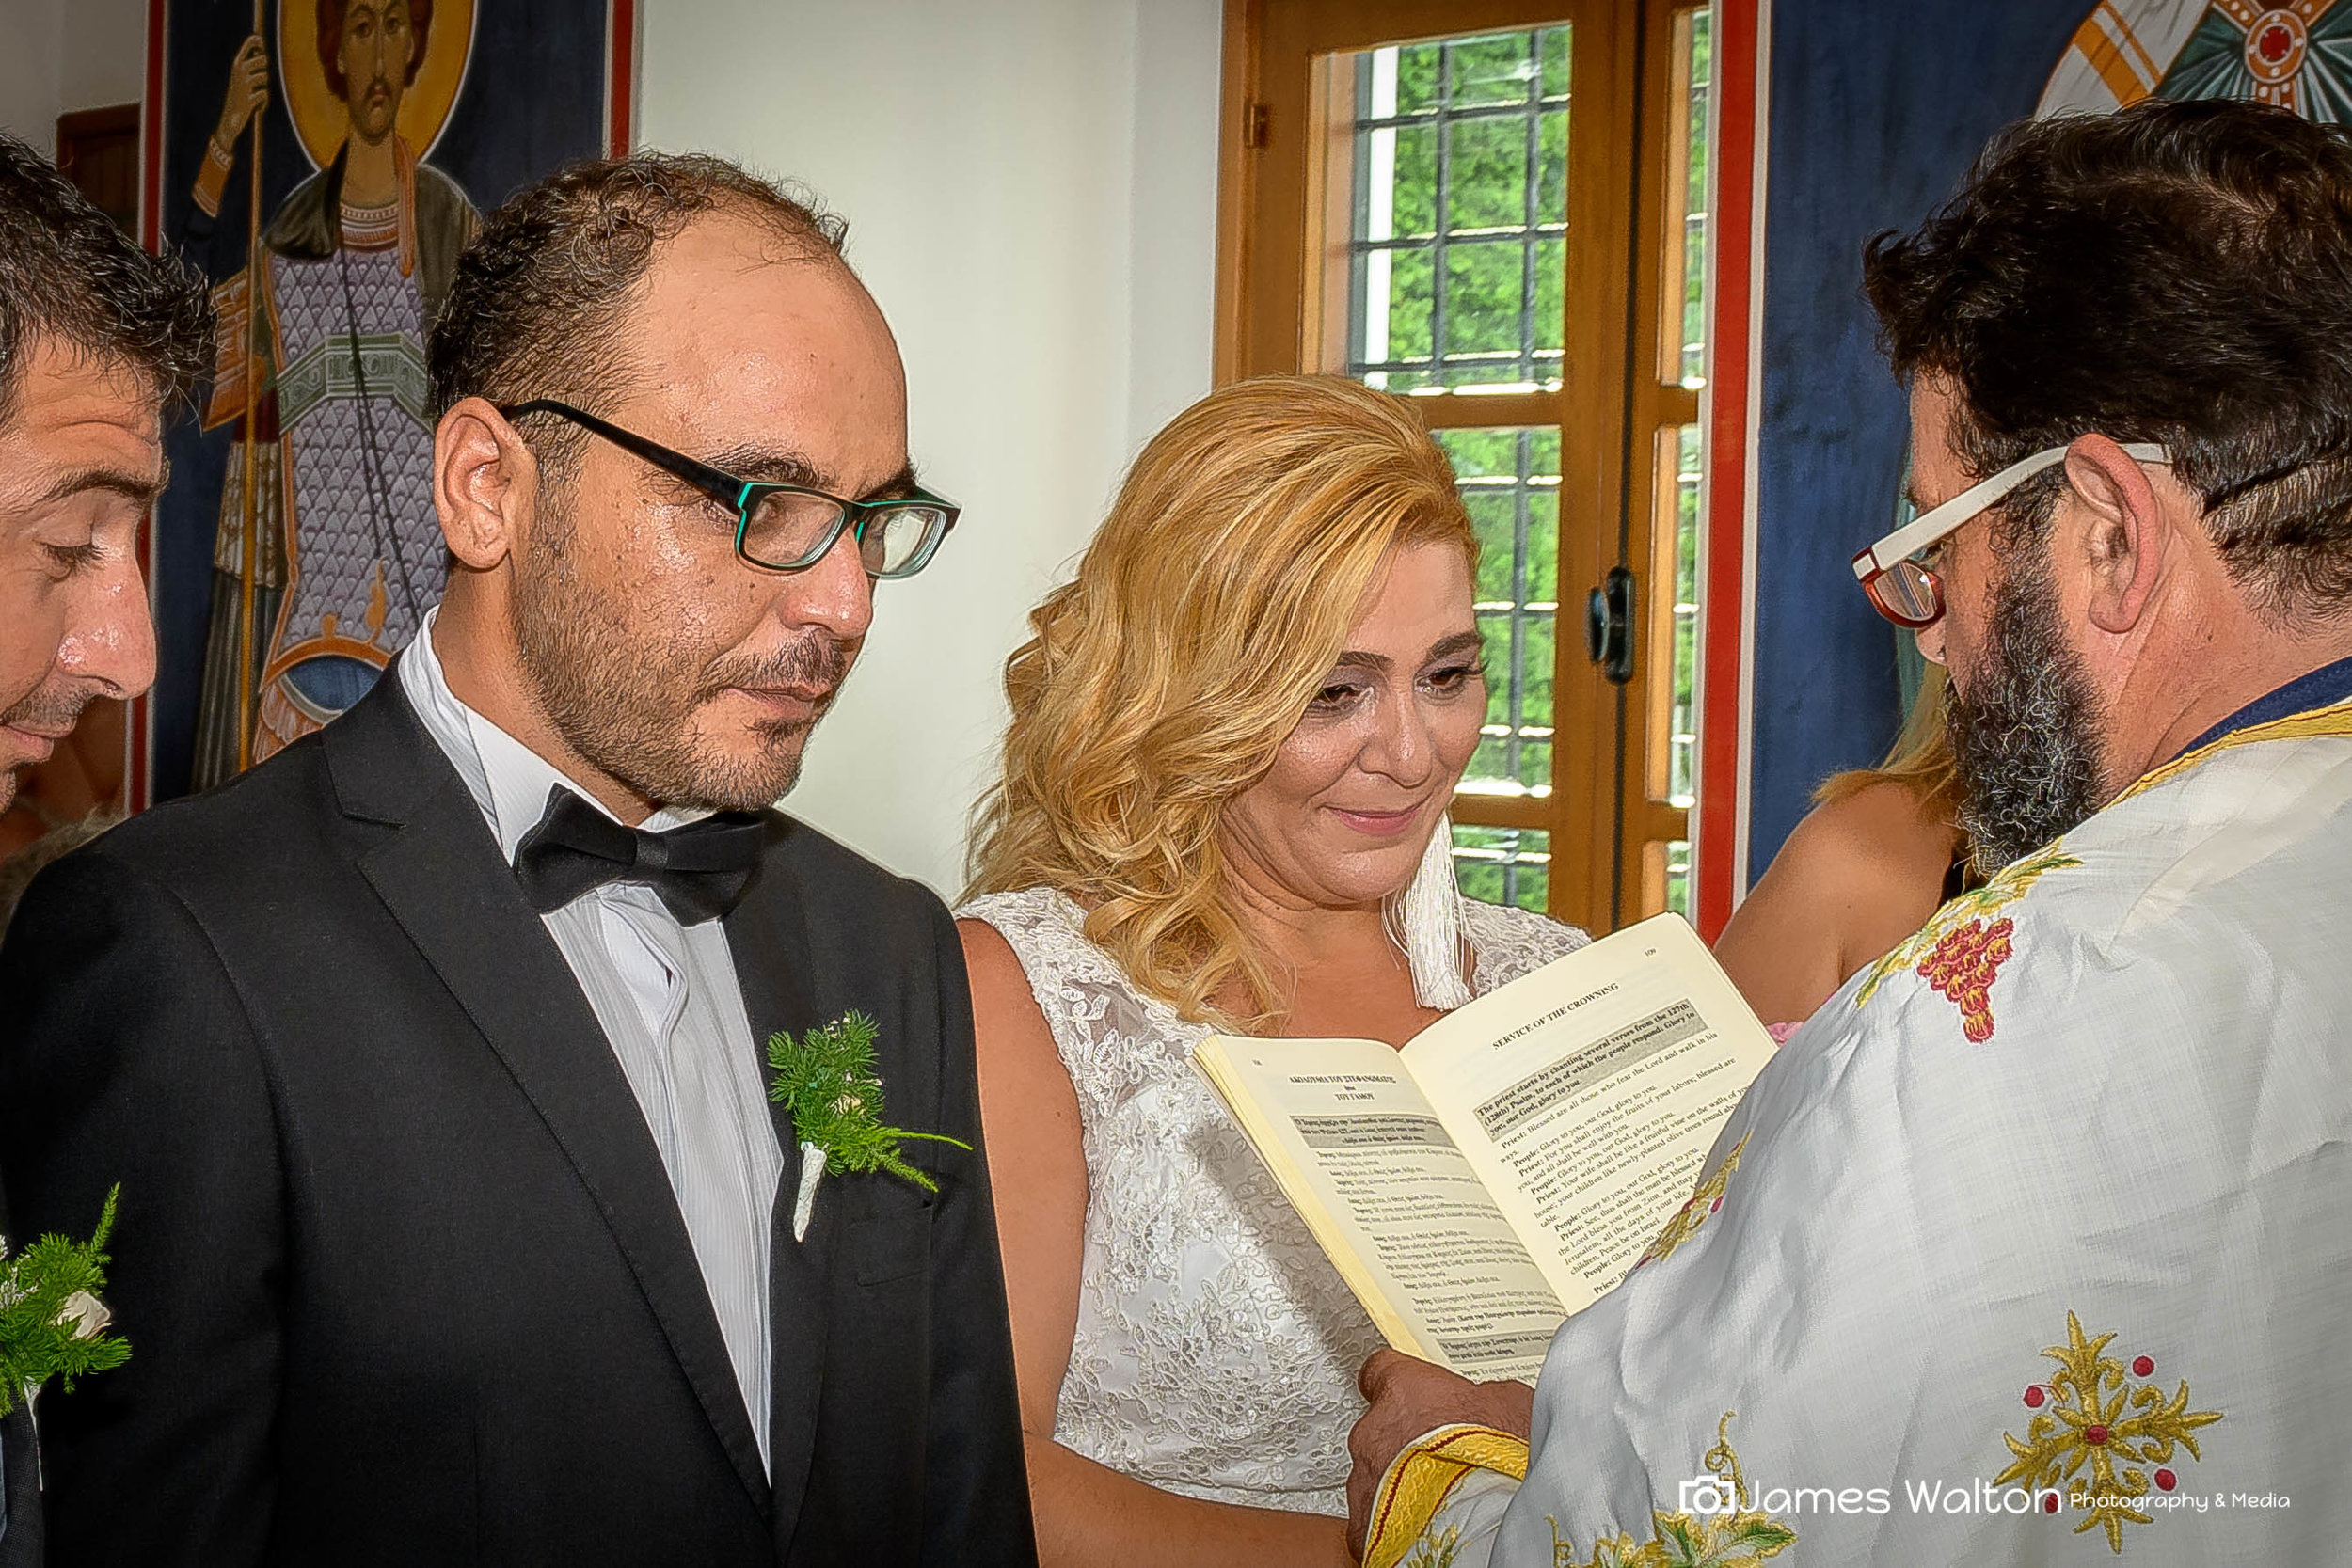 James is an excellent photographer, he did an excellent job for our wedding - Nicole Kyriakos September 2018